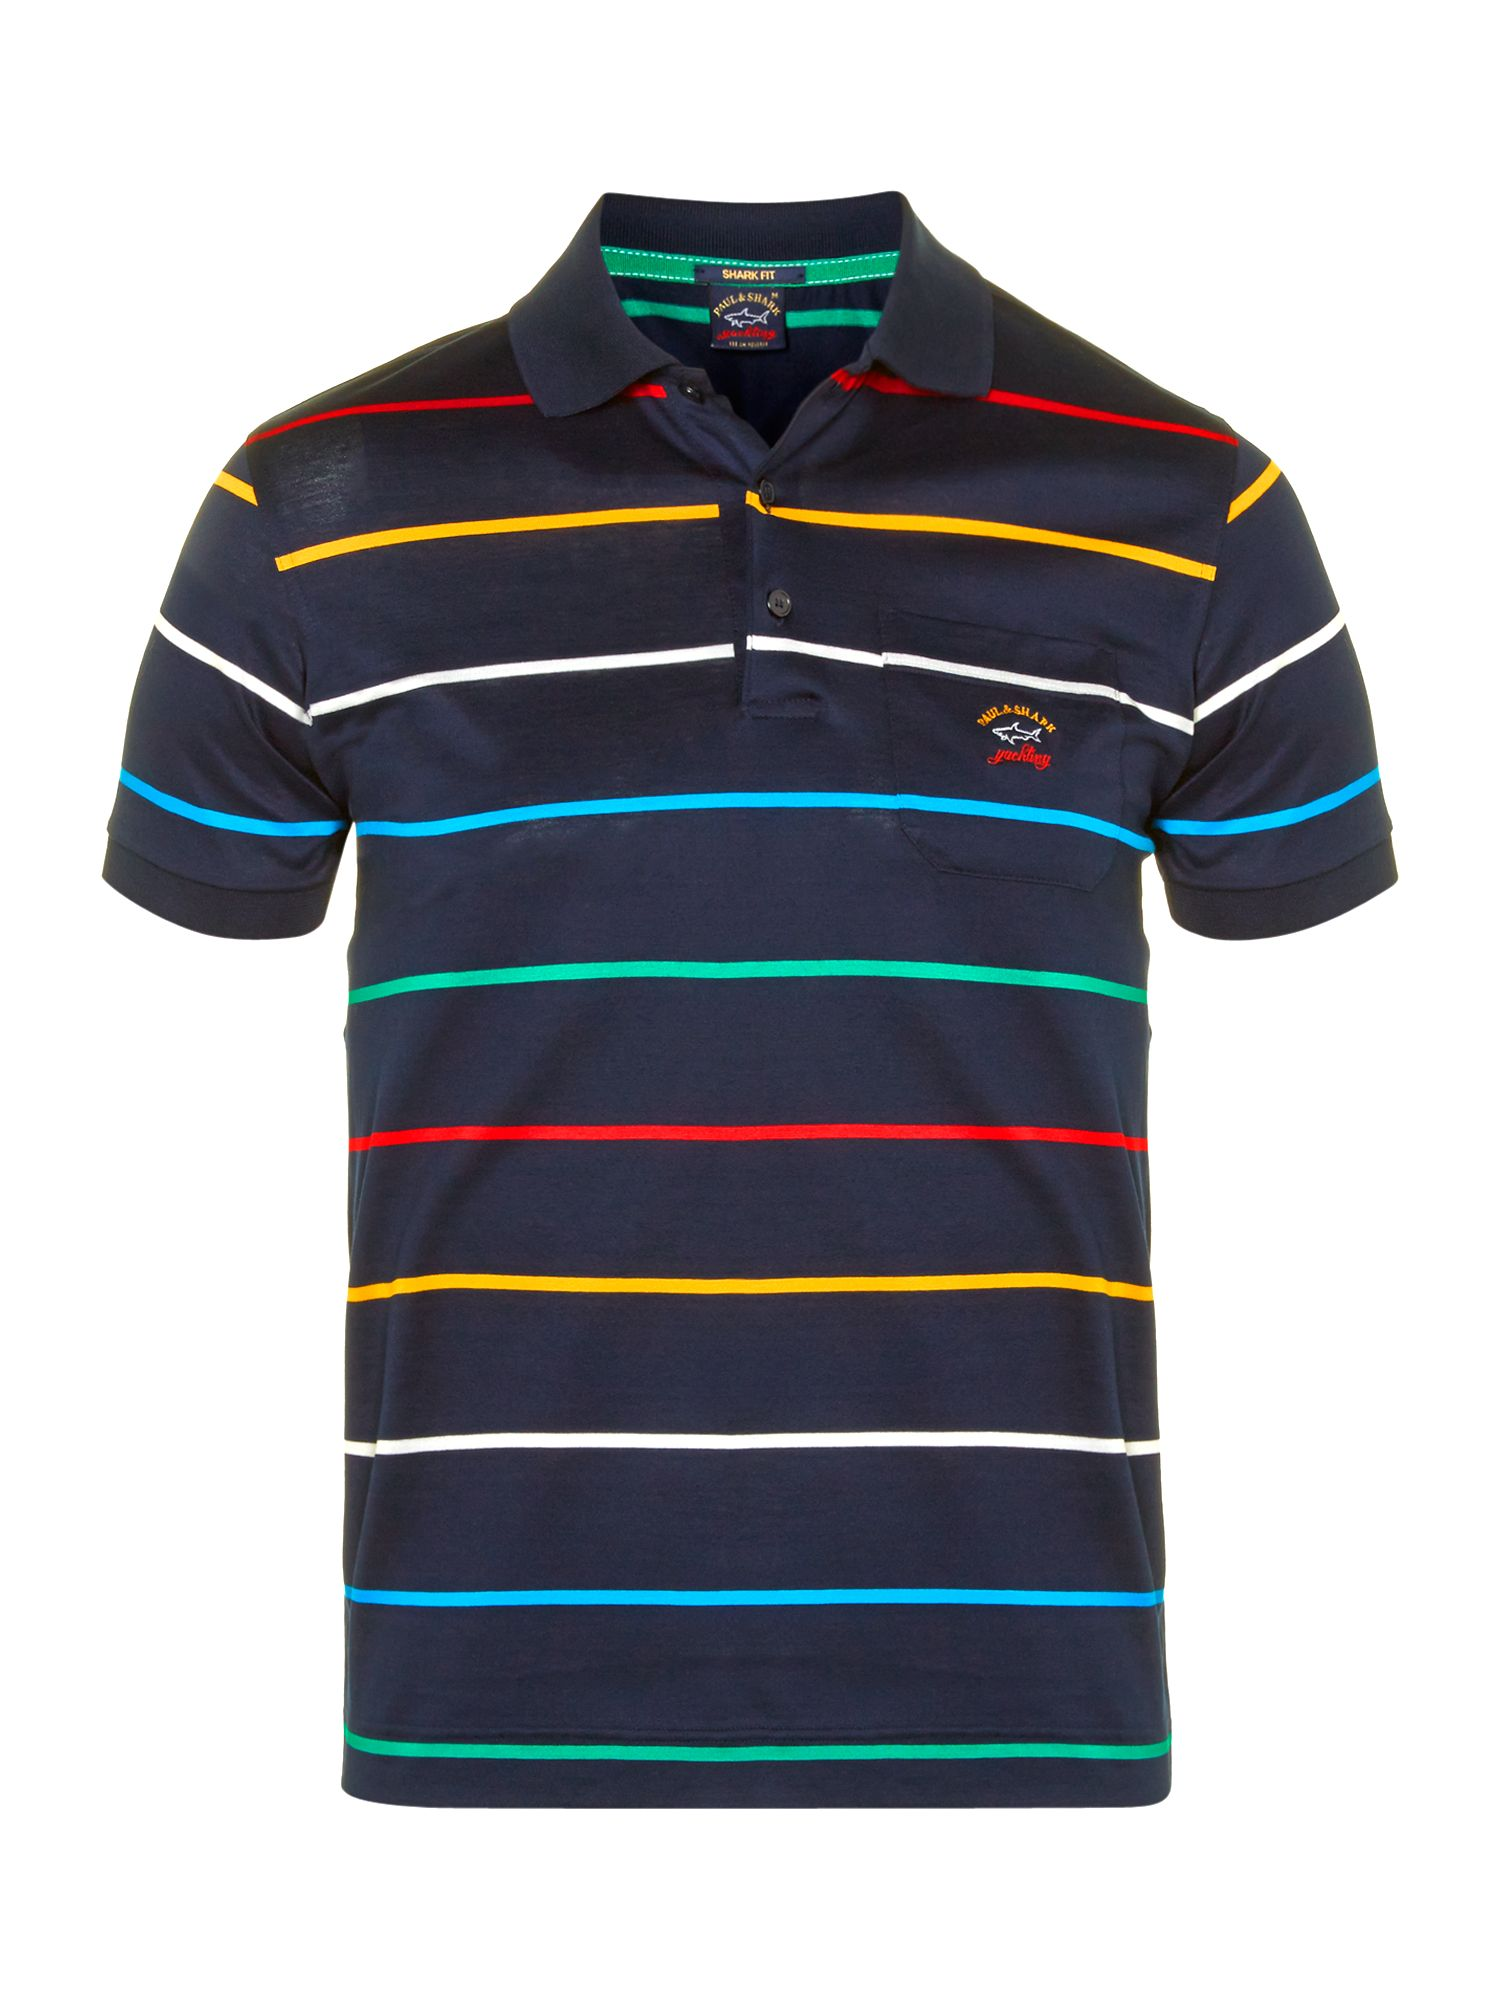 Classic striped polo